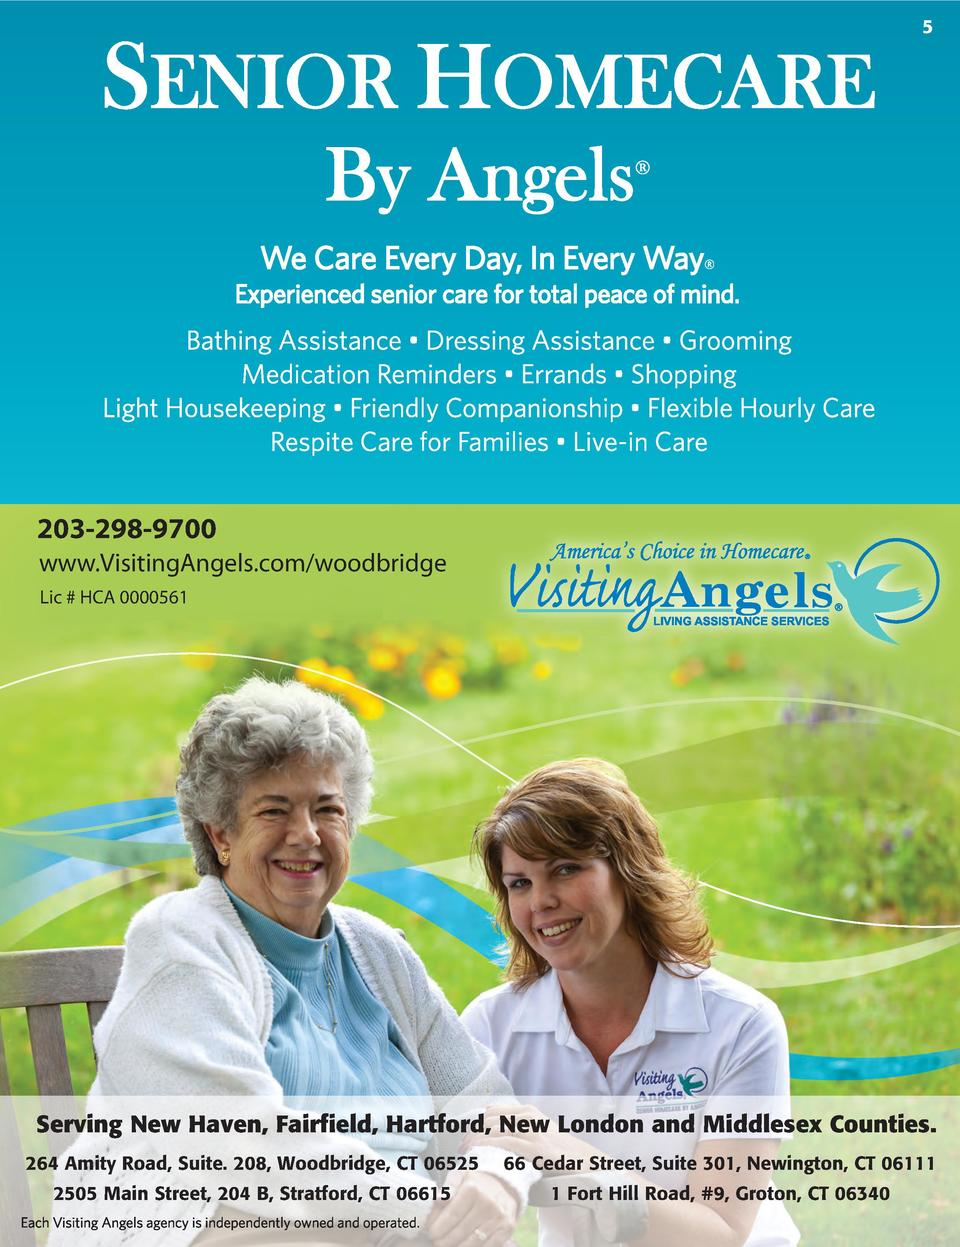 5  203-298-9700 www.VisitingAngels.com woodbridge Lic   HCA 0000561  Serving New Haven, Fairfield, Hartford, New London an...